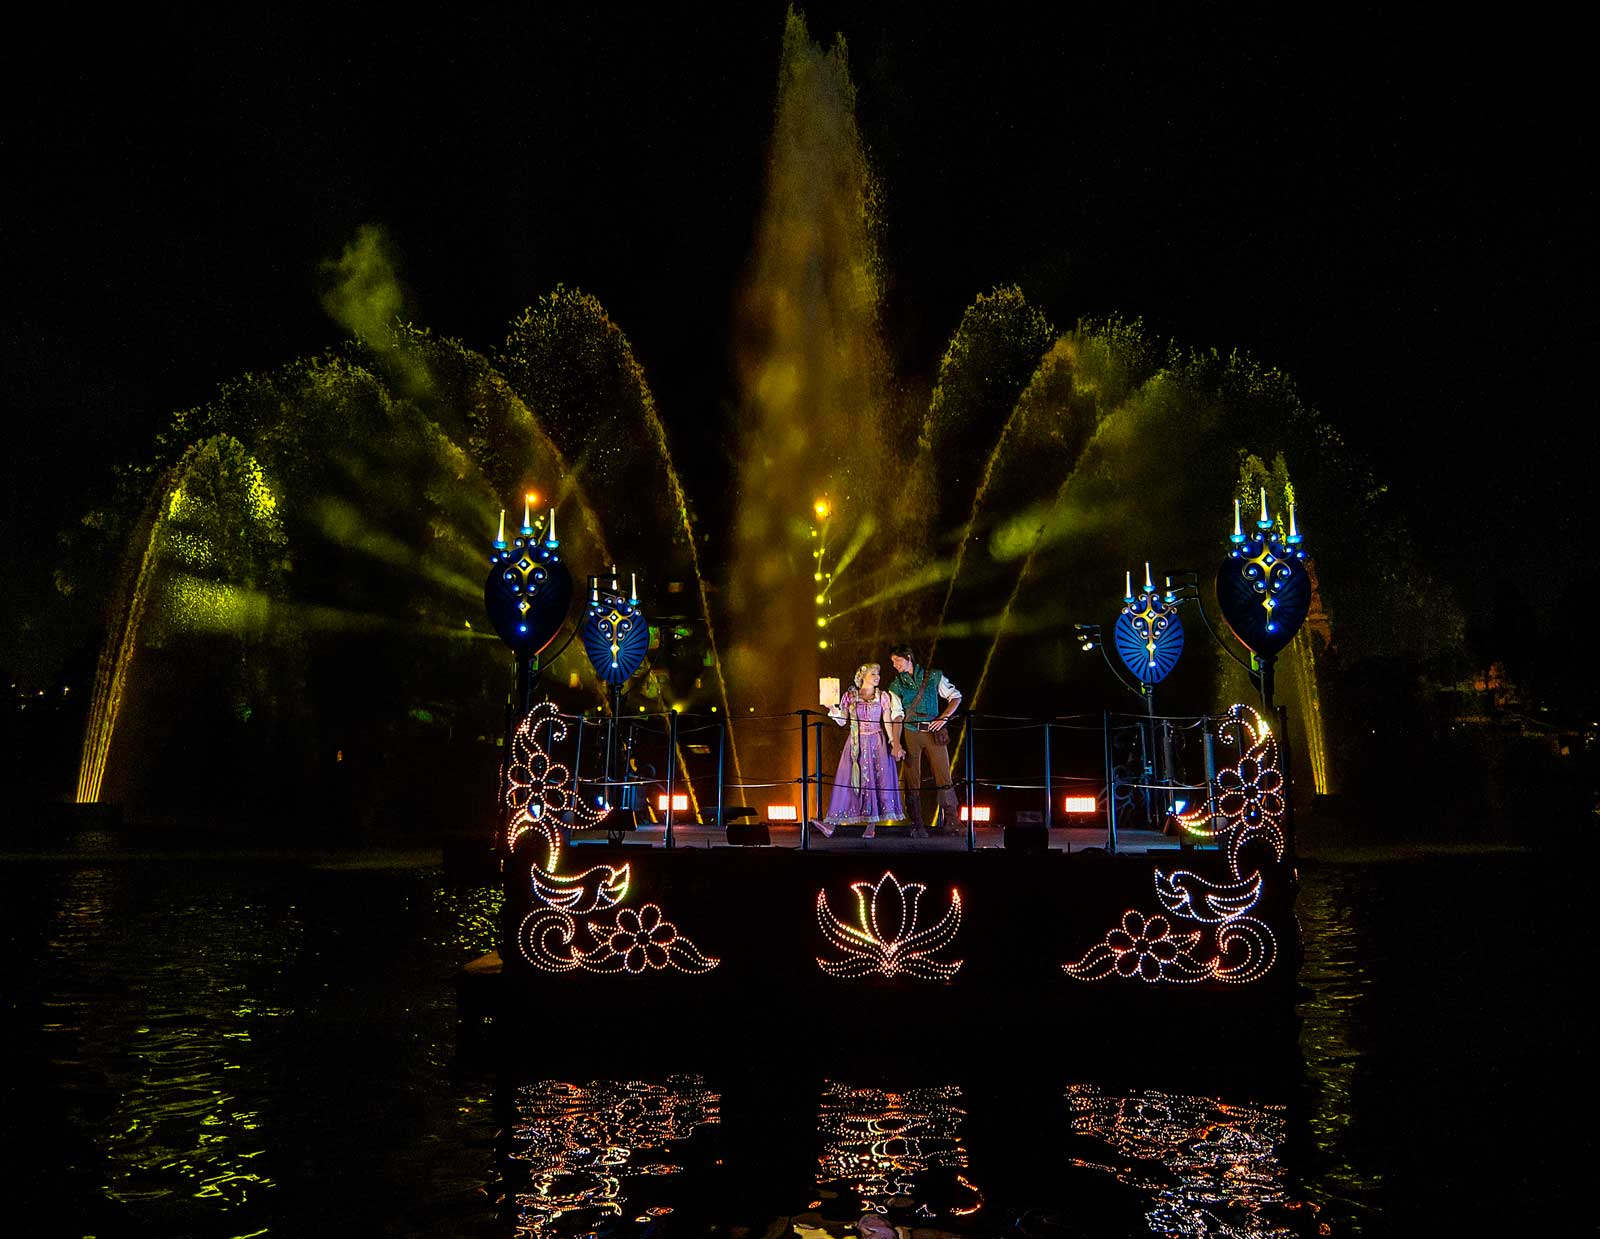 Fantasmic Returns To Disneyland With New Scenes And